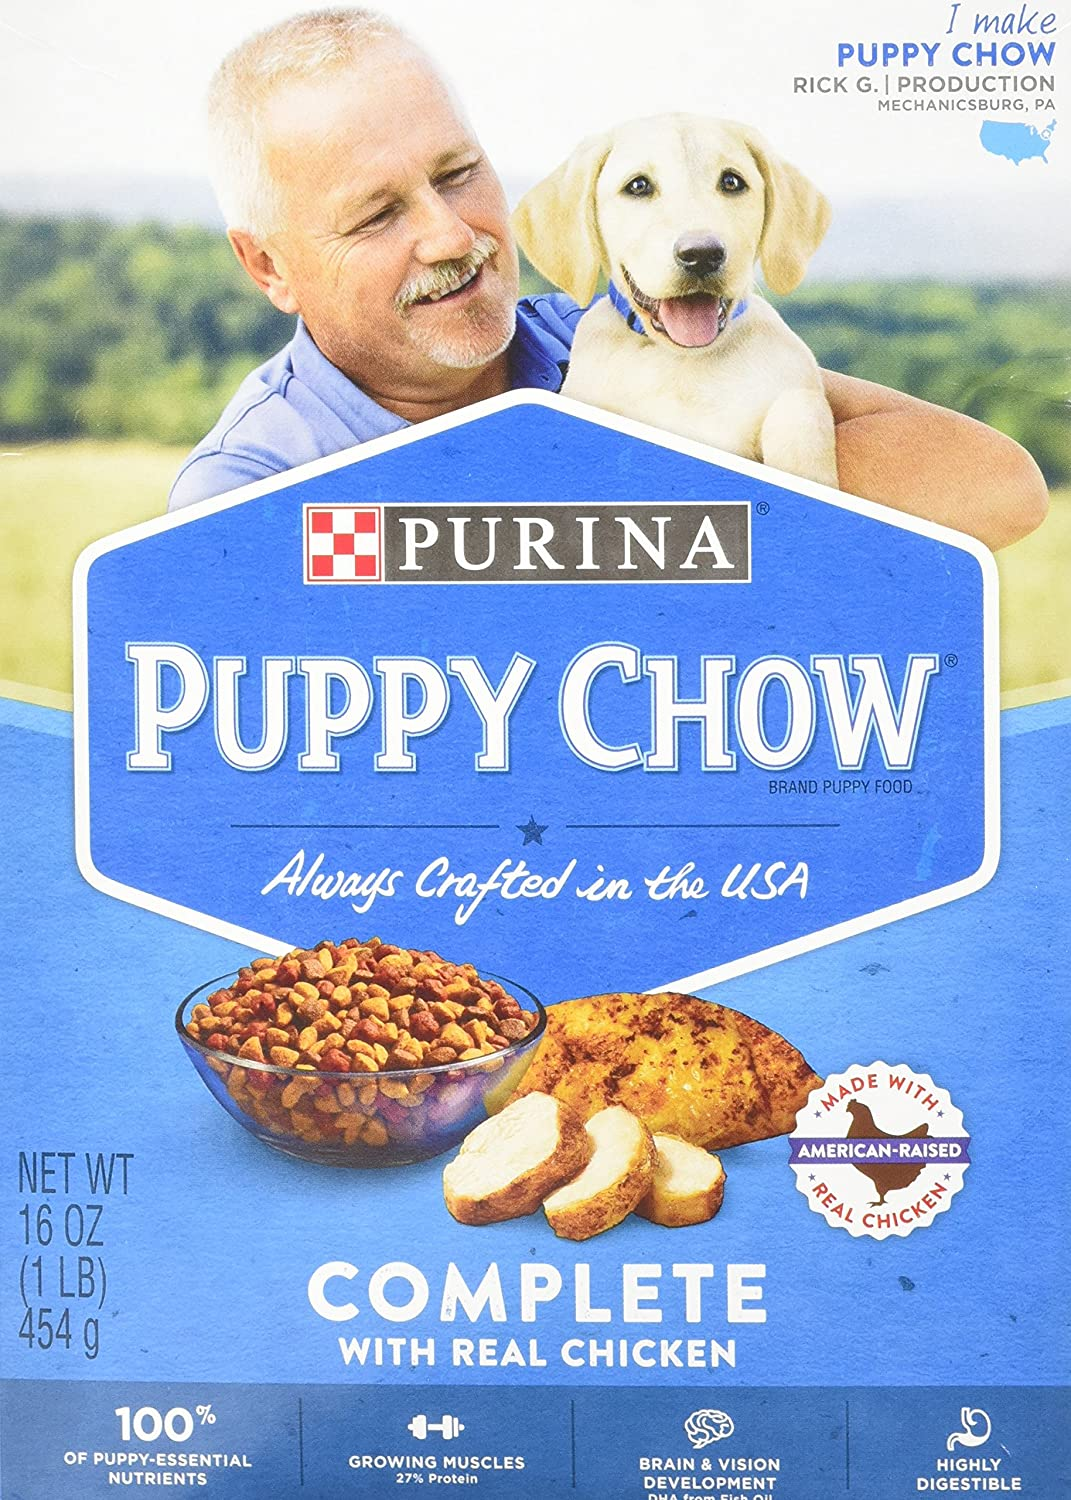 Complete Nutritious Meals For Healthy Beginners 16 oz by Puppy Chow